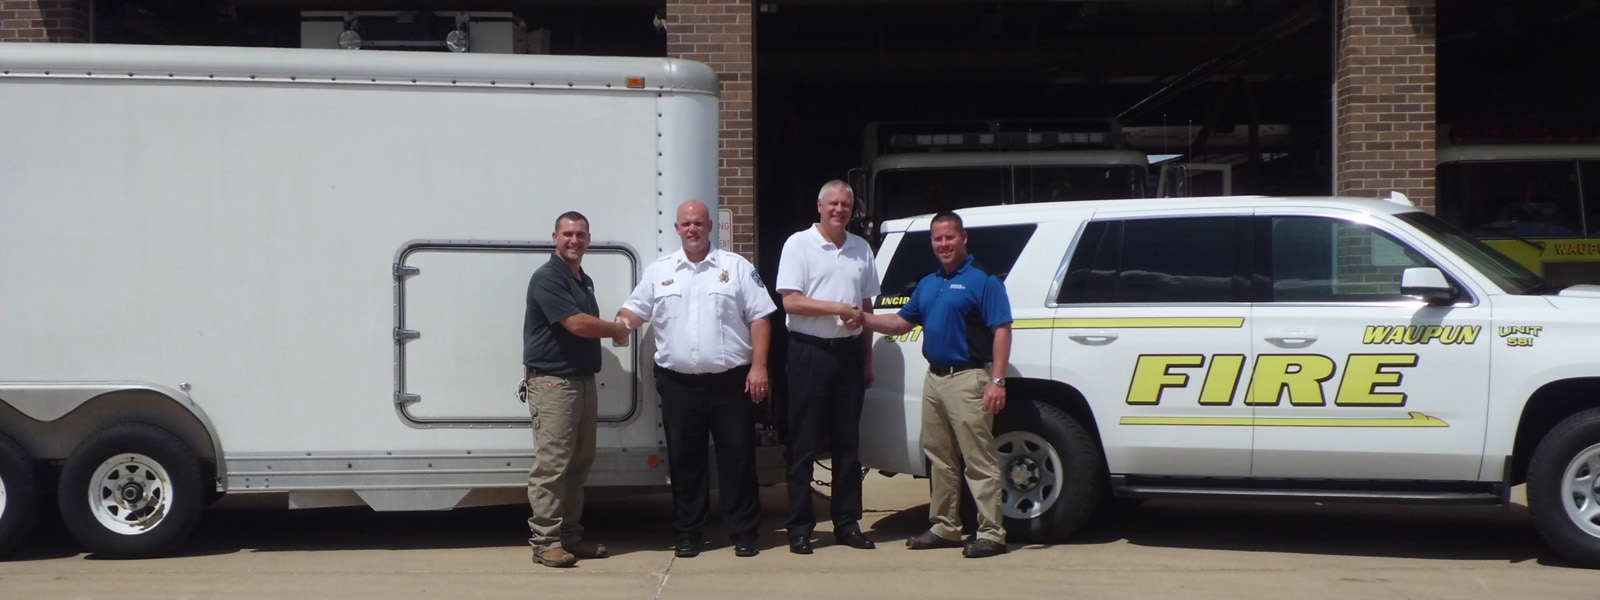 Koch Pipeline Company Donates Emergency Response Equipment to Waupun Fire Department